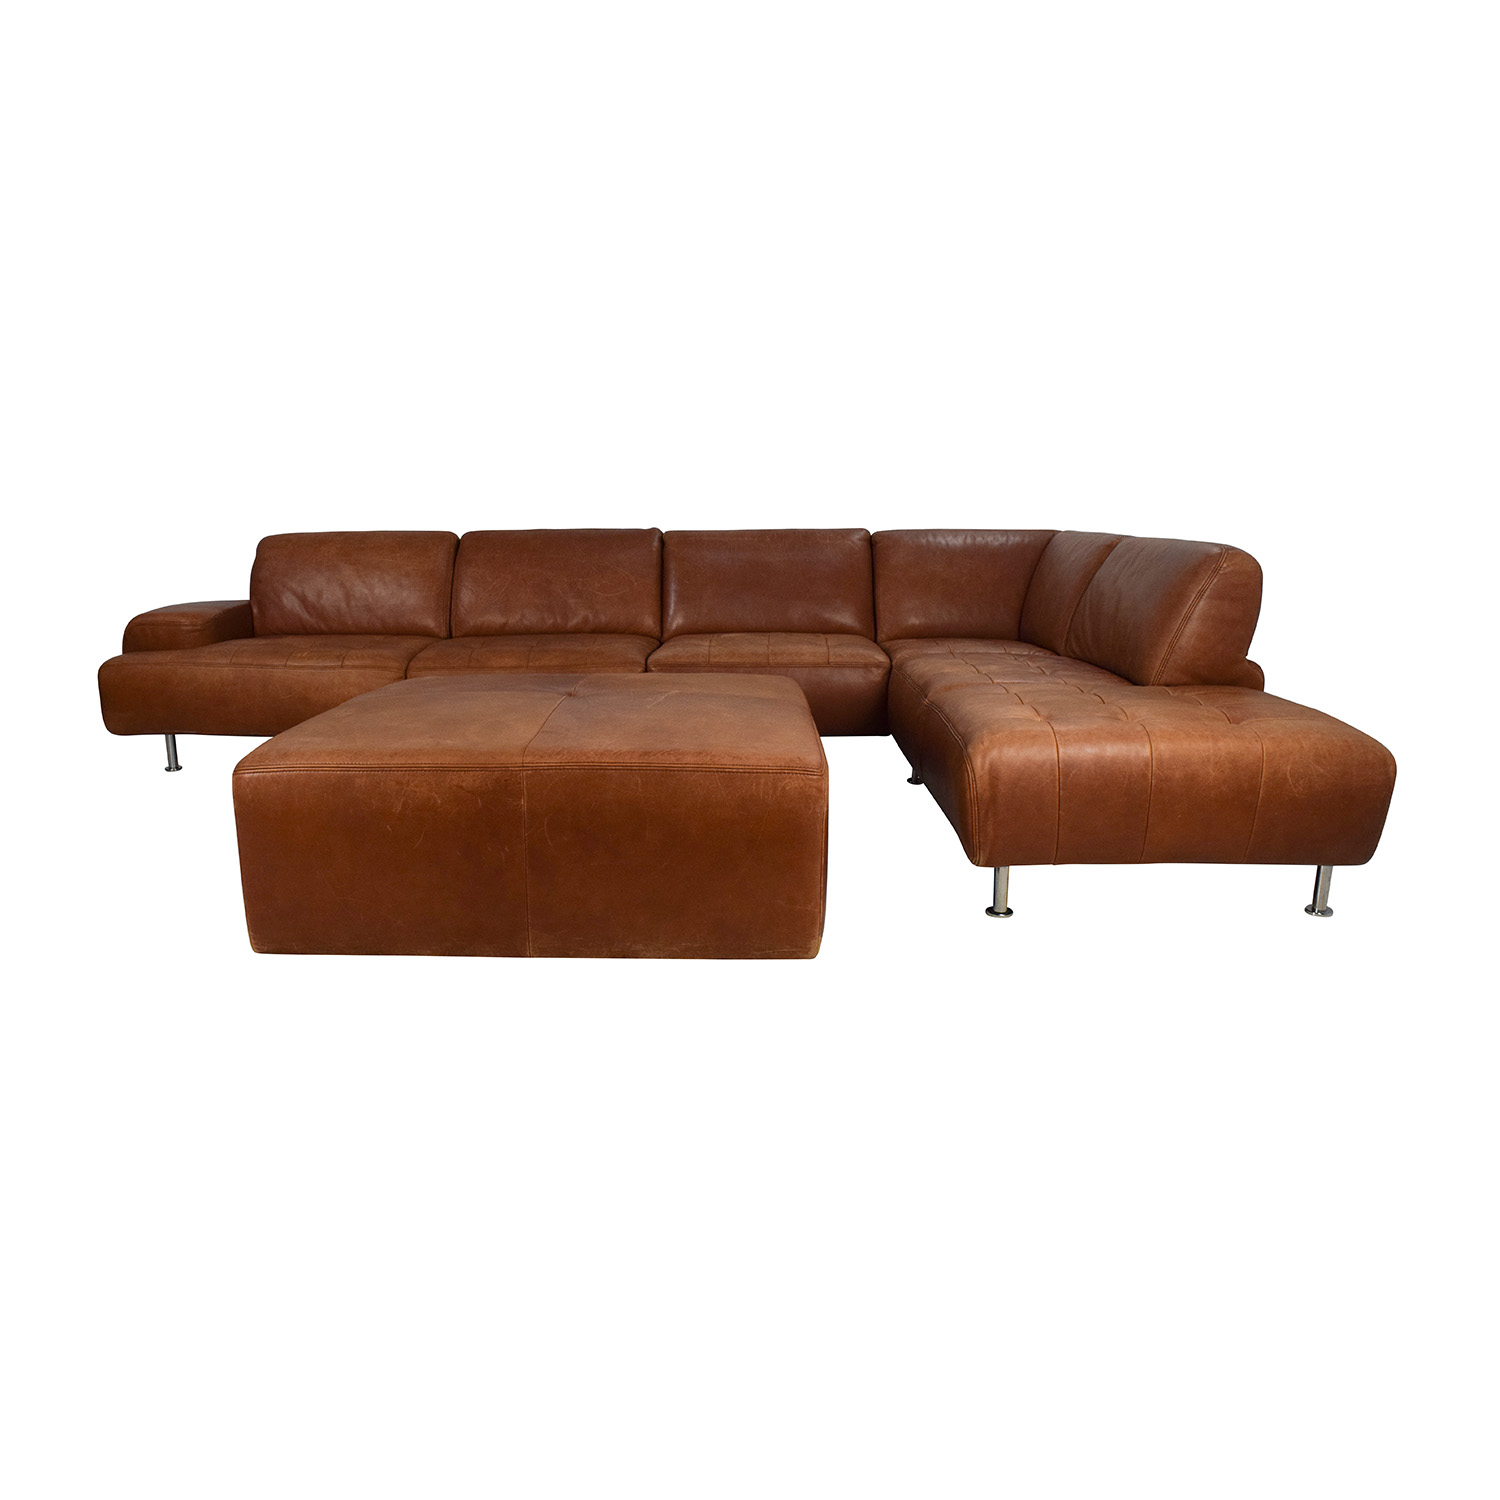 Willi Schillig Ecksofa Longlife Leder 53 Off W Schillig W Schillig Leather Sectional And Ottoman Sofas